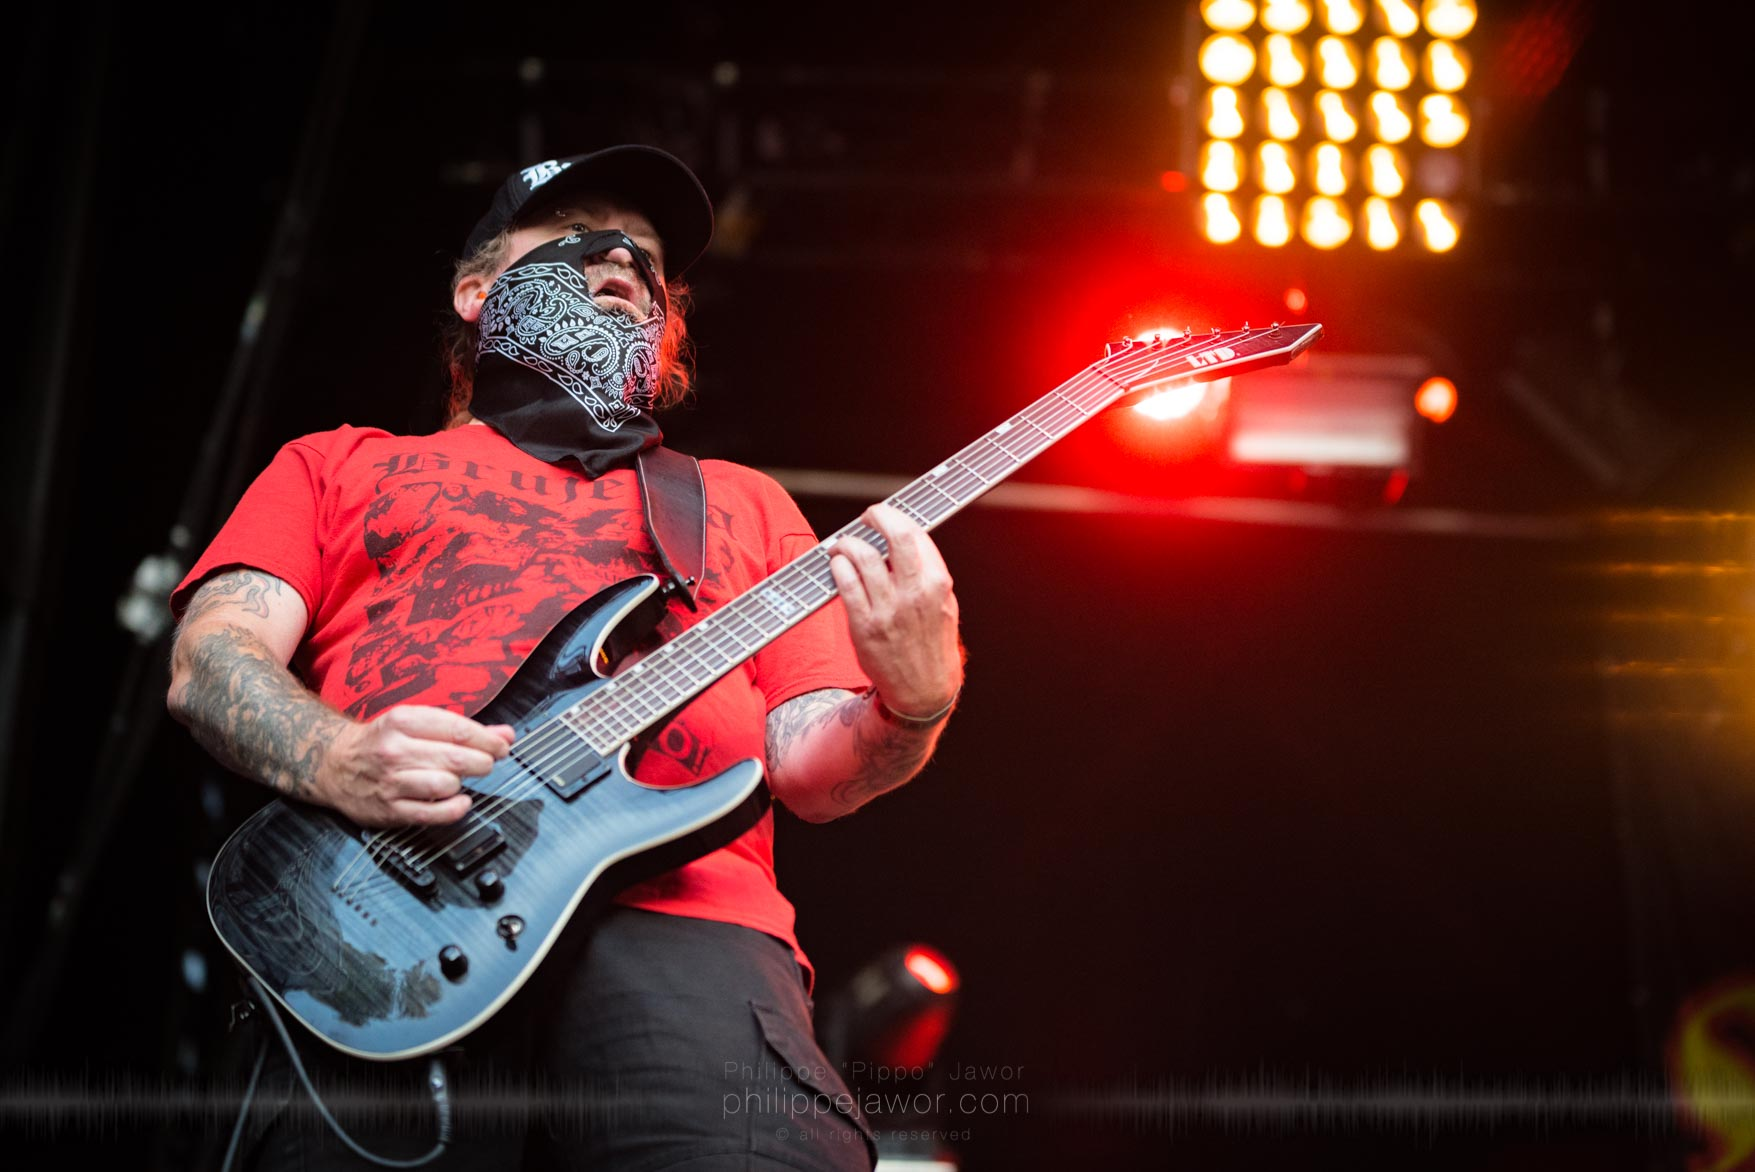 The Mexican deathgrind metal band Brujeria, live at Sylak Open Air festival, Saint Maurice de Gourdans, France, August 2017.  On assignment for Metal Obs' Magazine All rights reserved.